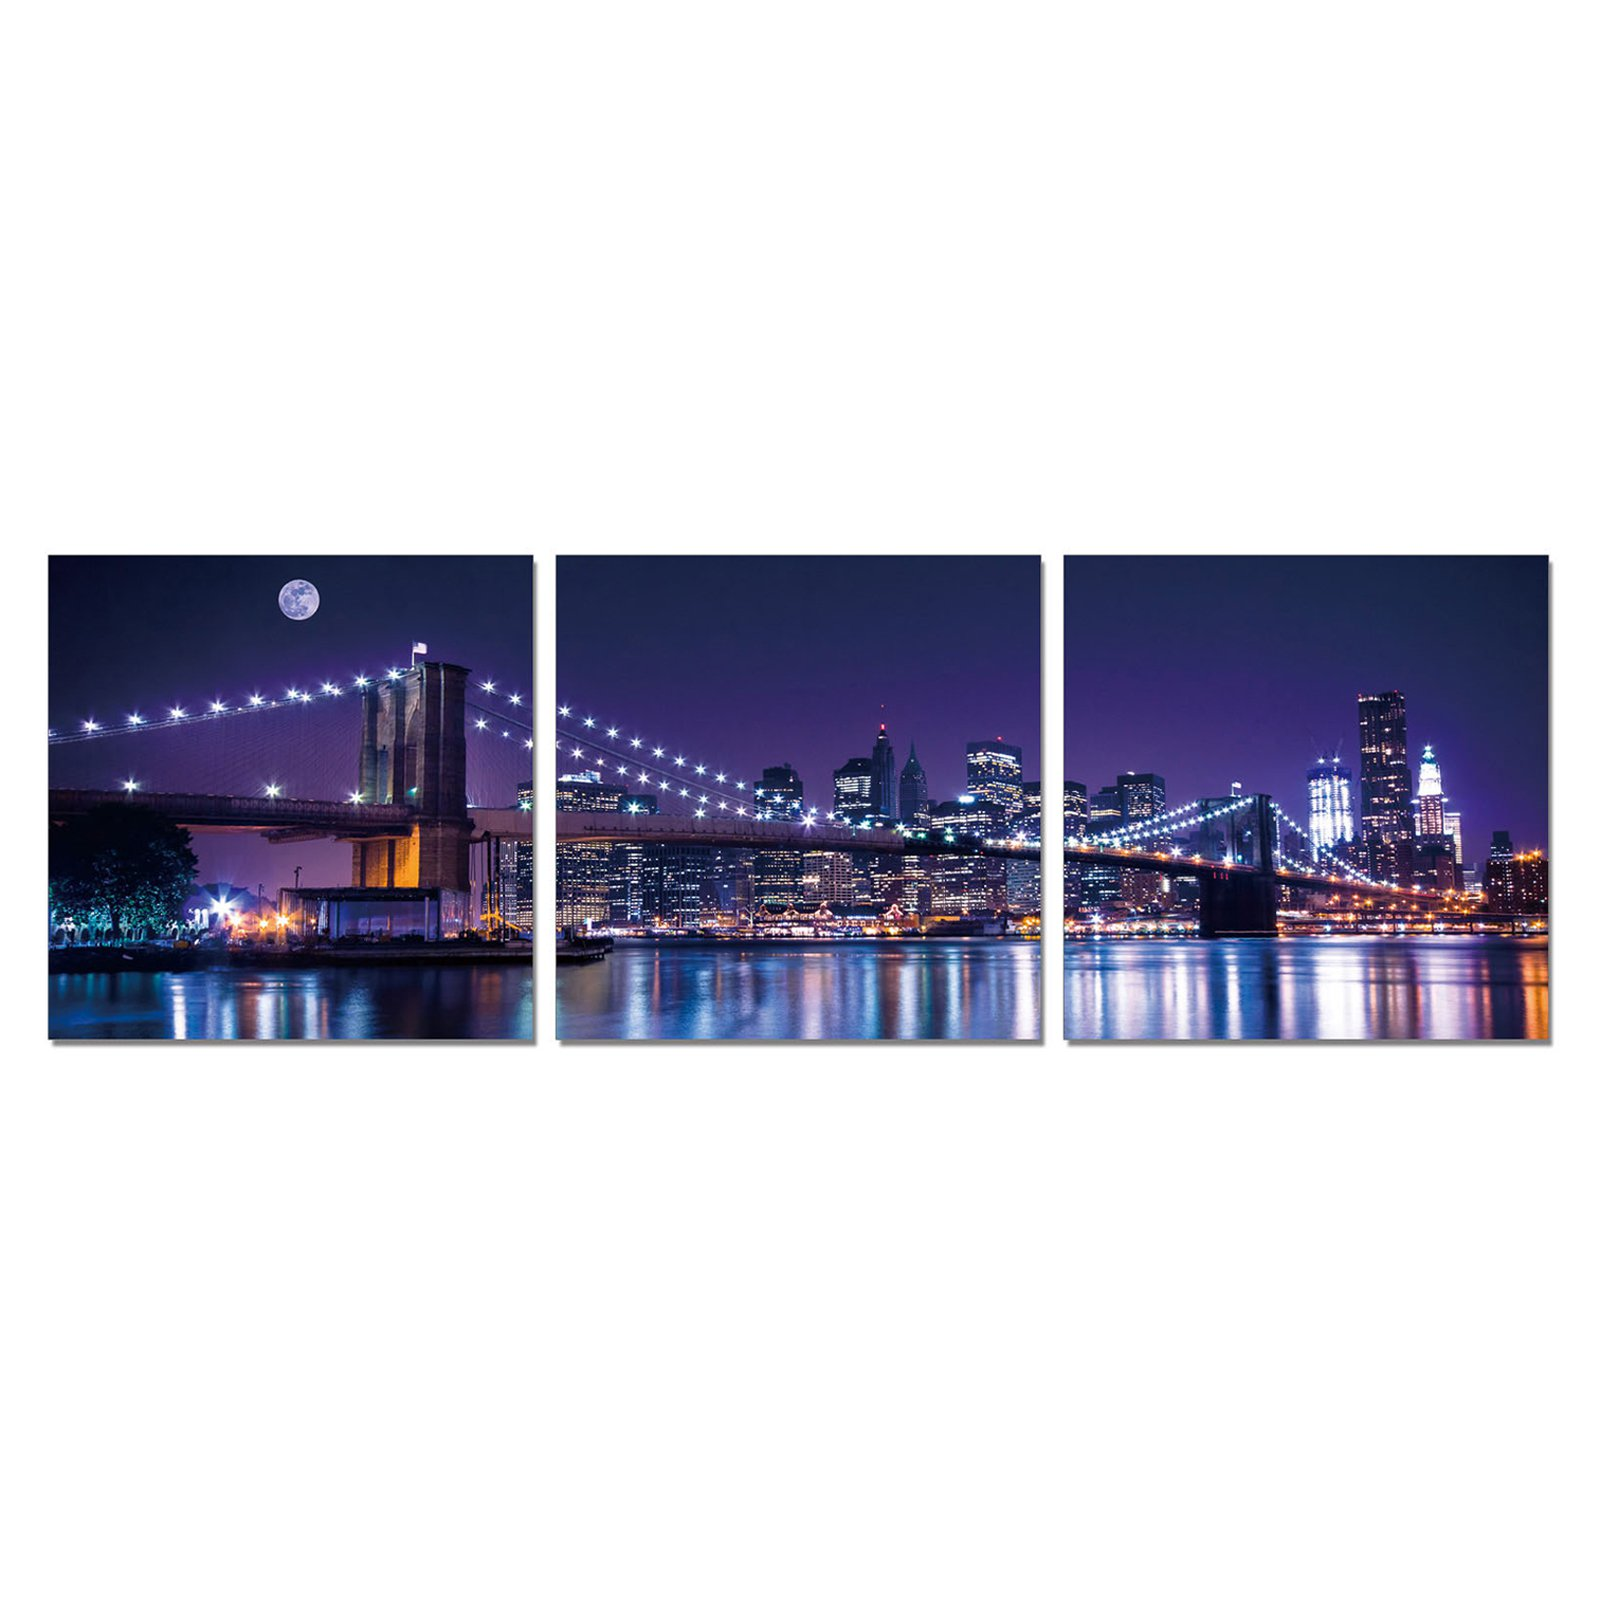 Furinno SeniA NYC The City Never Sleeps 3-Panel MDF Framed Photography Triptych Print, 48 x 16-in